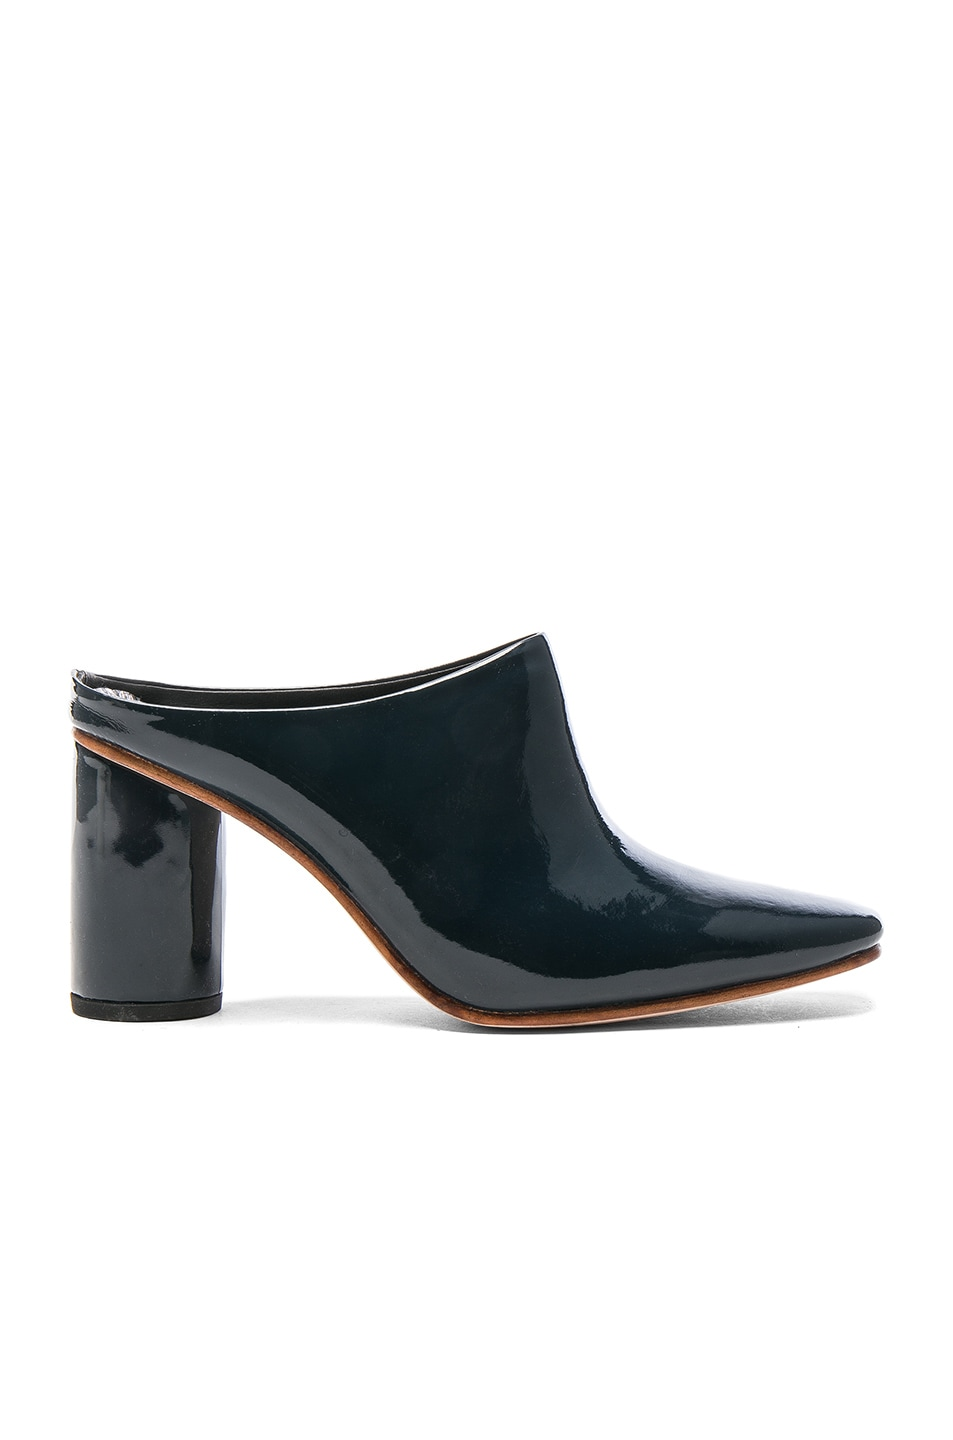 Image 1 of Rachel Comey Patent Leather Scarpa in Space Patent